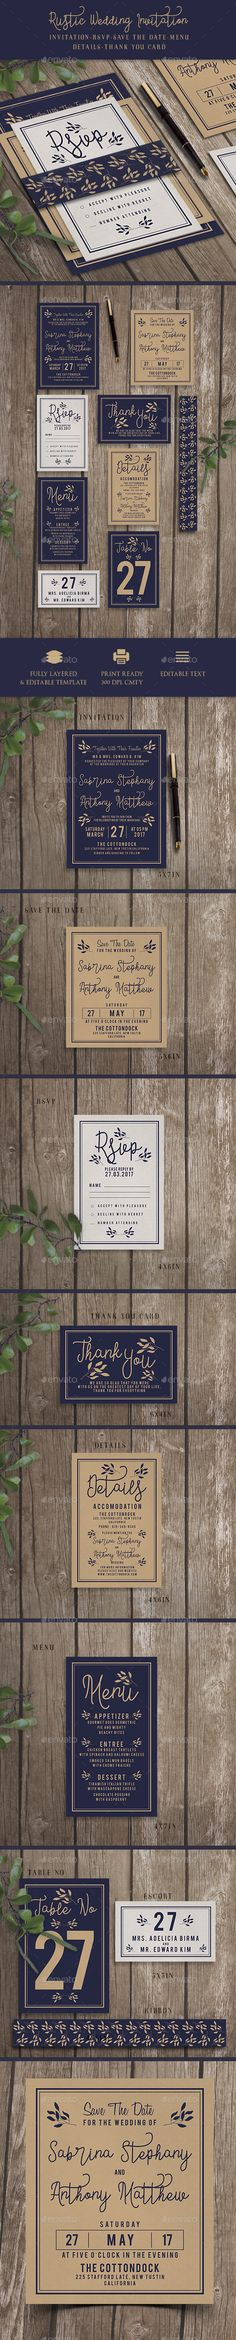 Wedding Invitation — Photoshop PSD #wedding invitation #beautiful • Download ➝ https://graphicriver.net/item/wedding-invitation/19845665?ref=pxcr